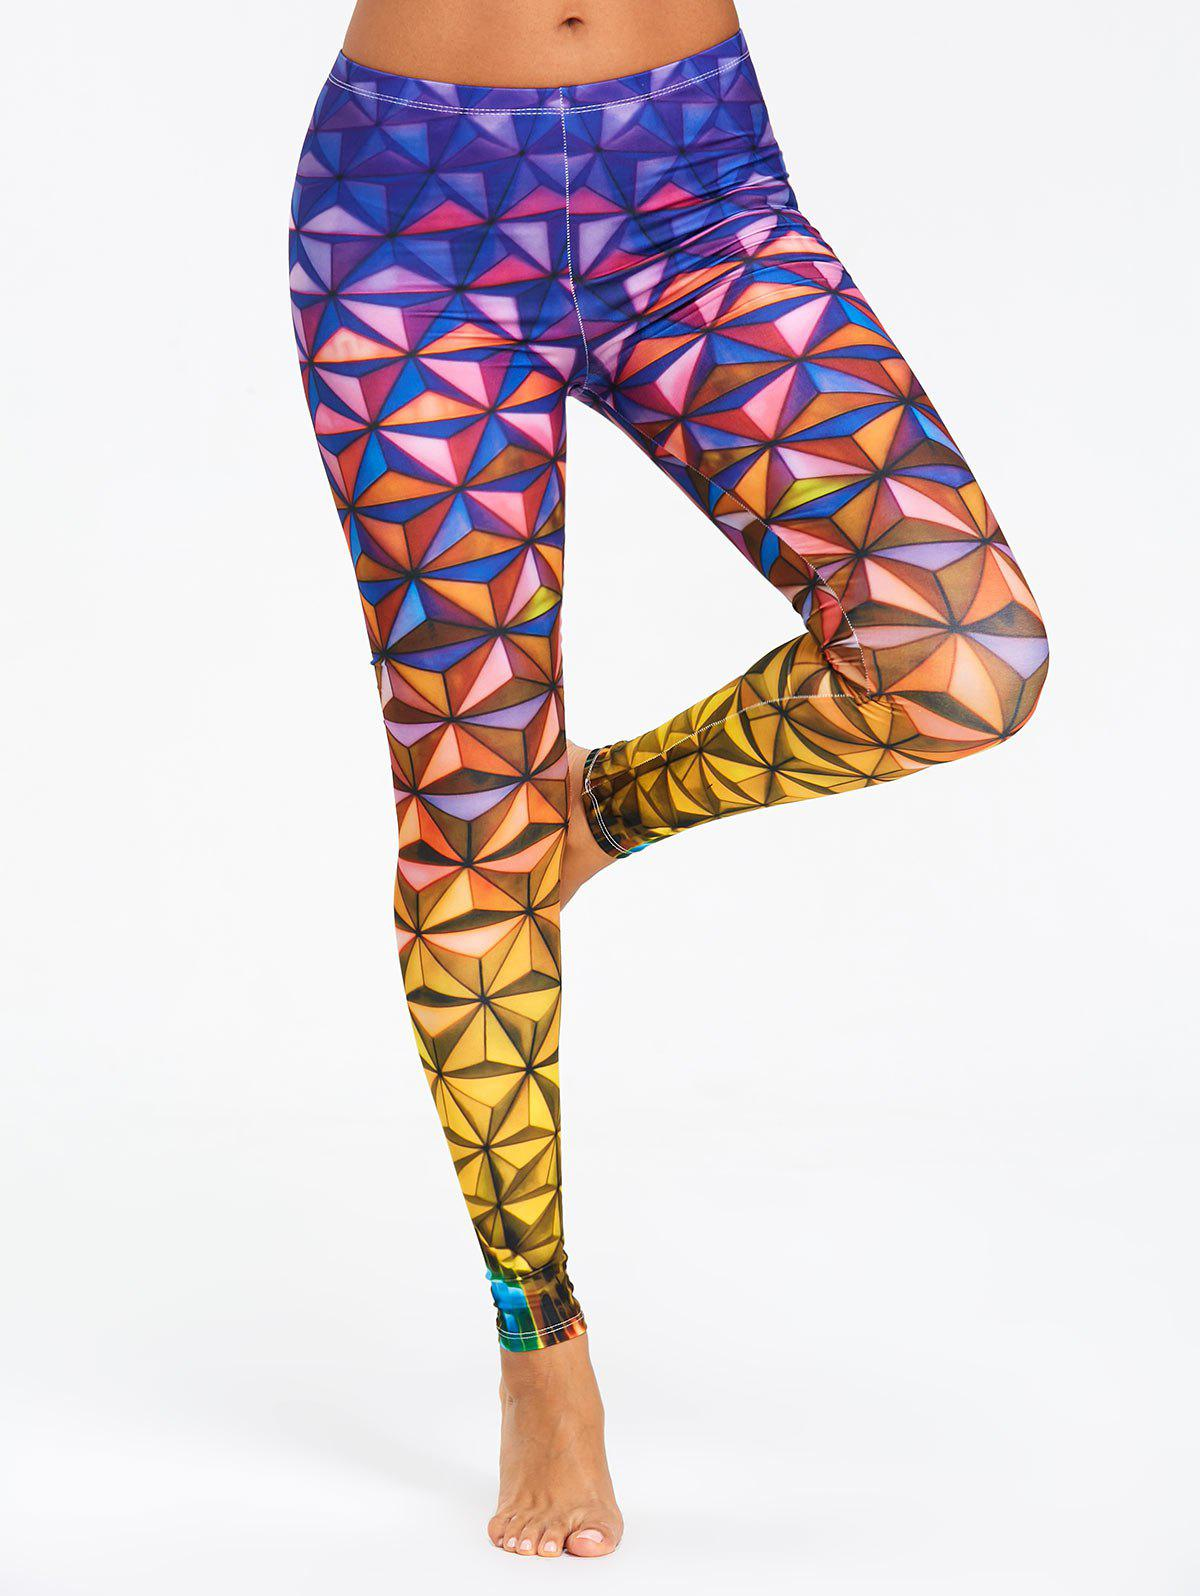 Unique Geometric 3D Print Ombre Yoga Leggings